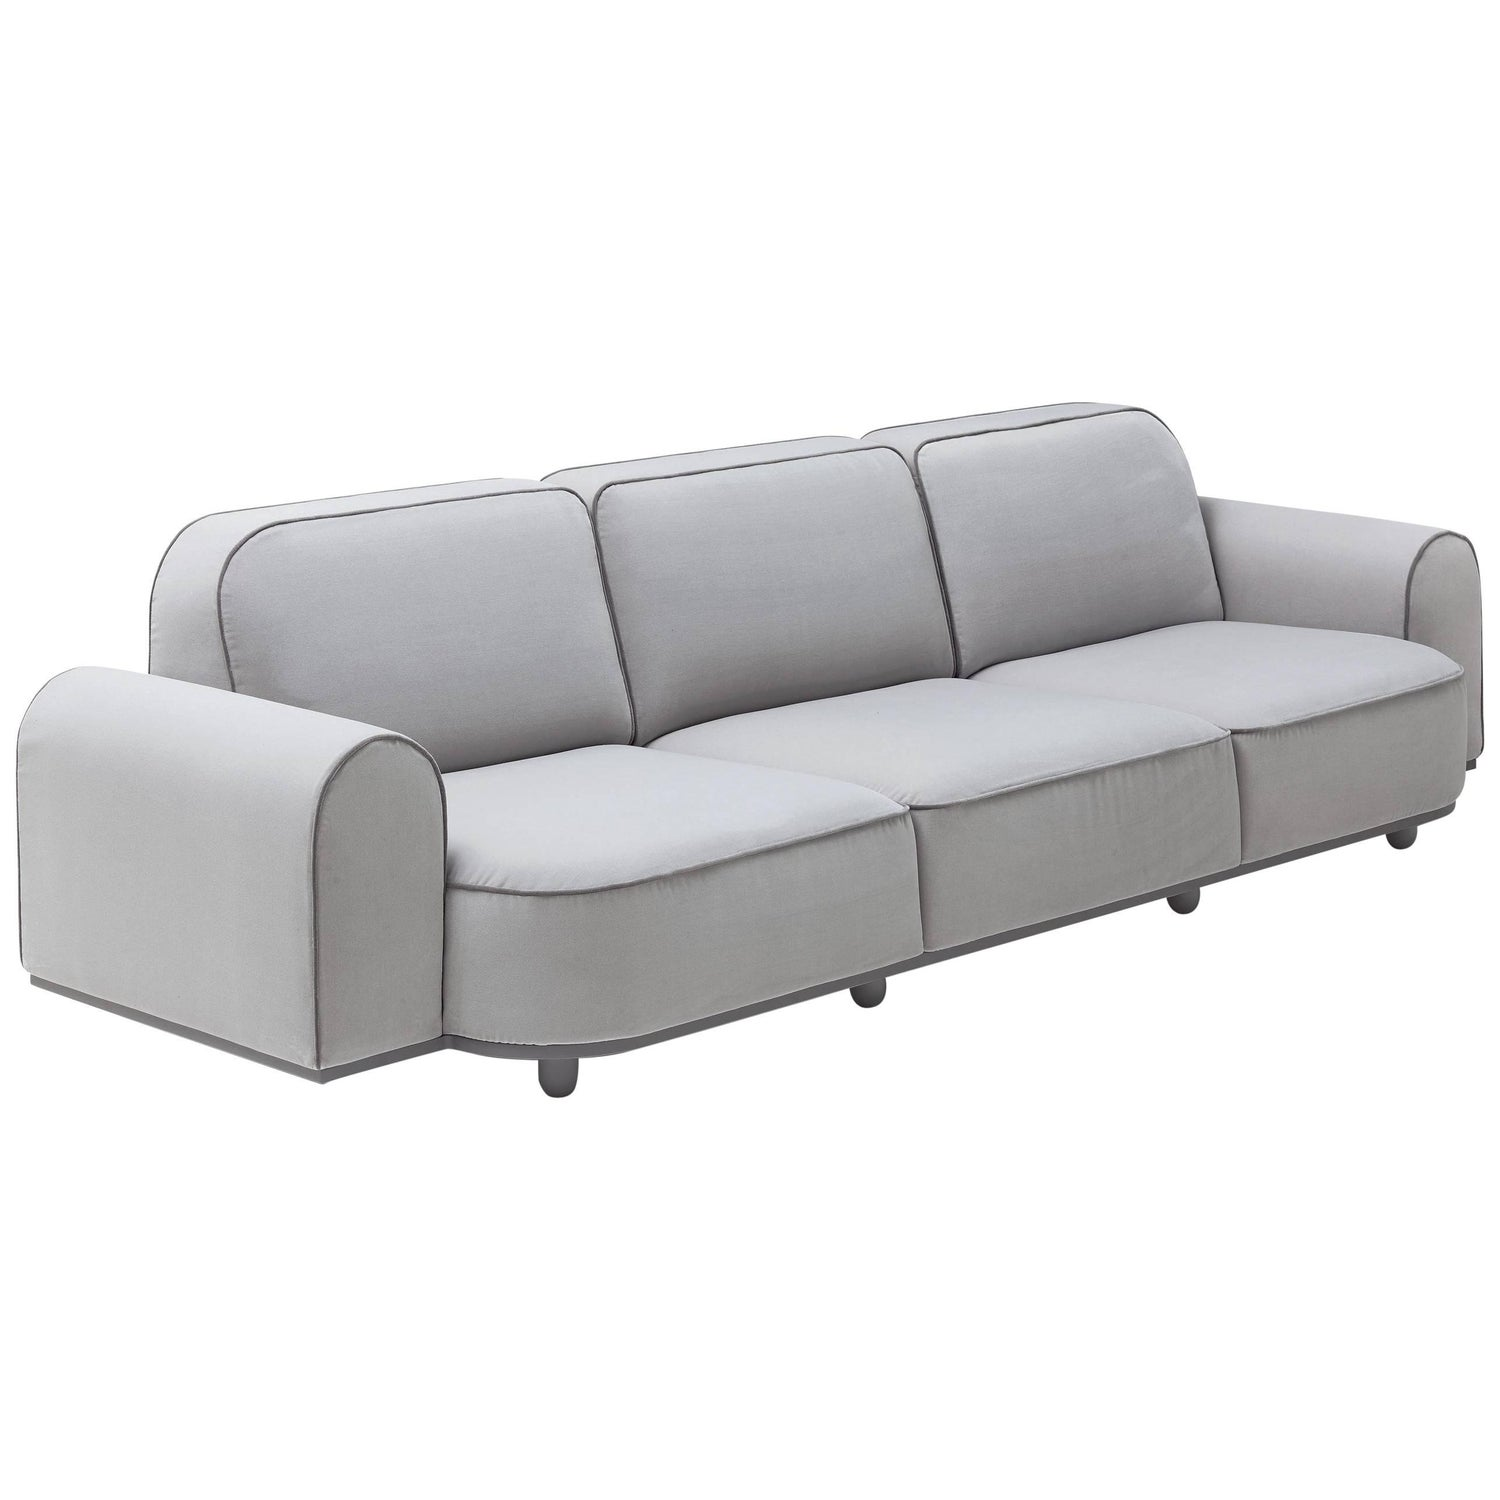 In Stock Arcolor Sofa by Jamine Hayon for Arflex Contemporary